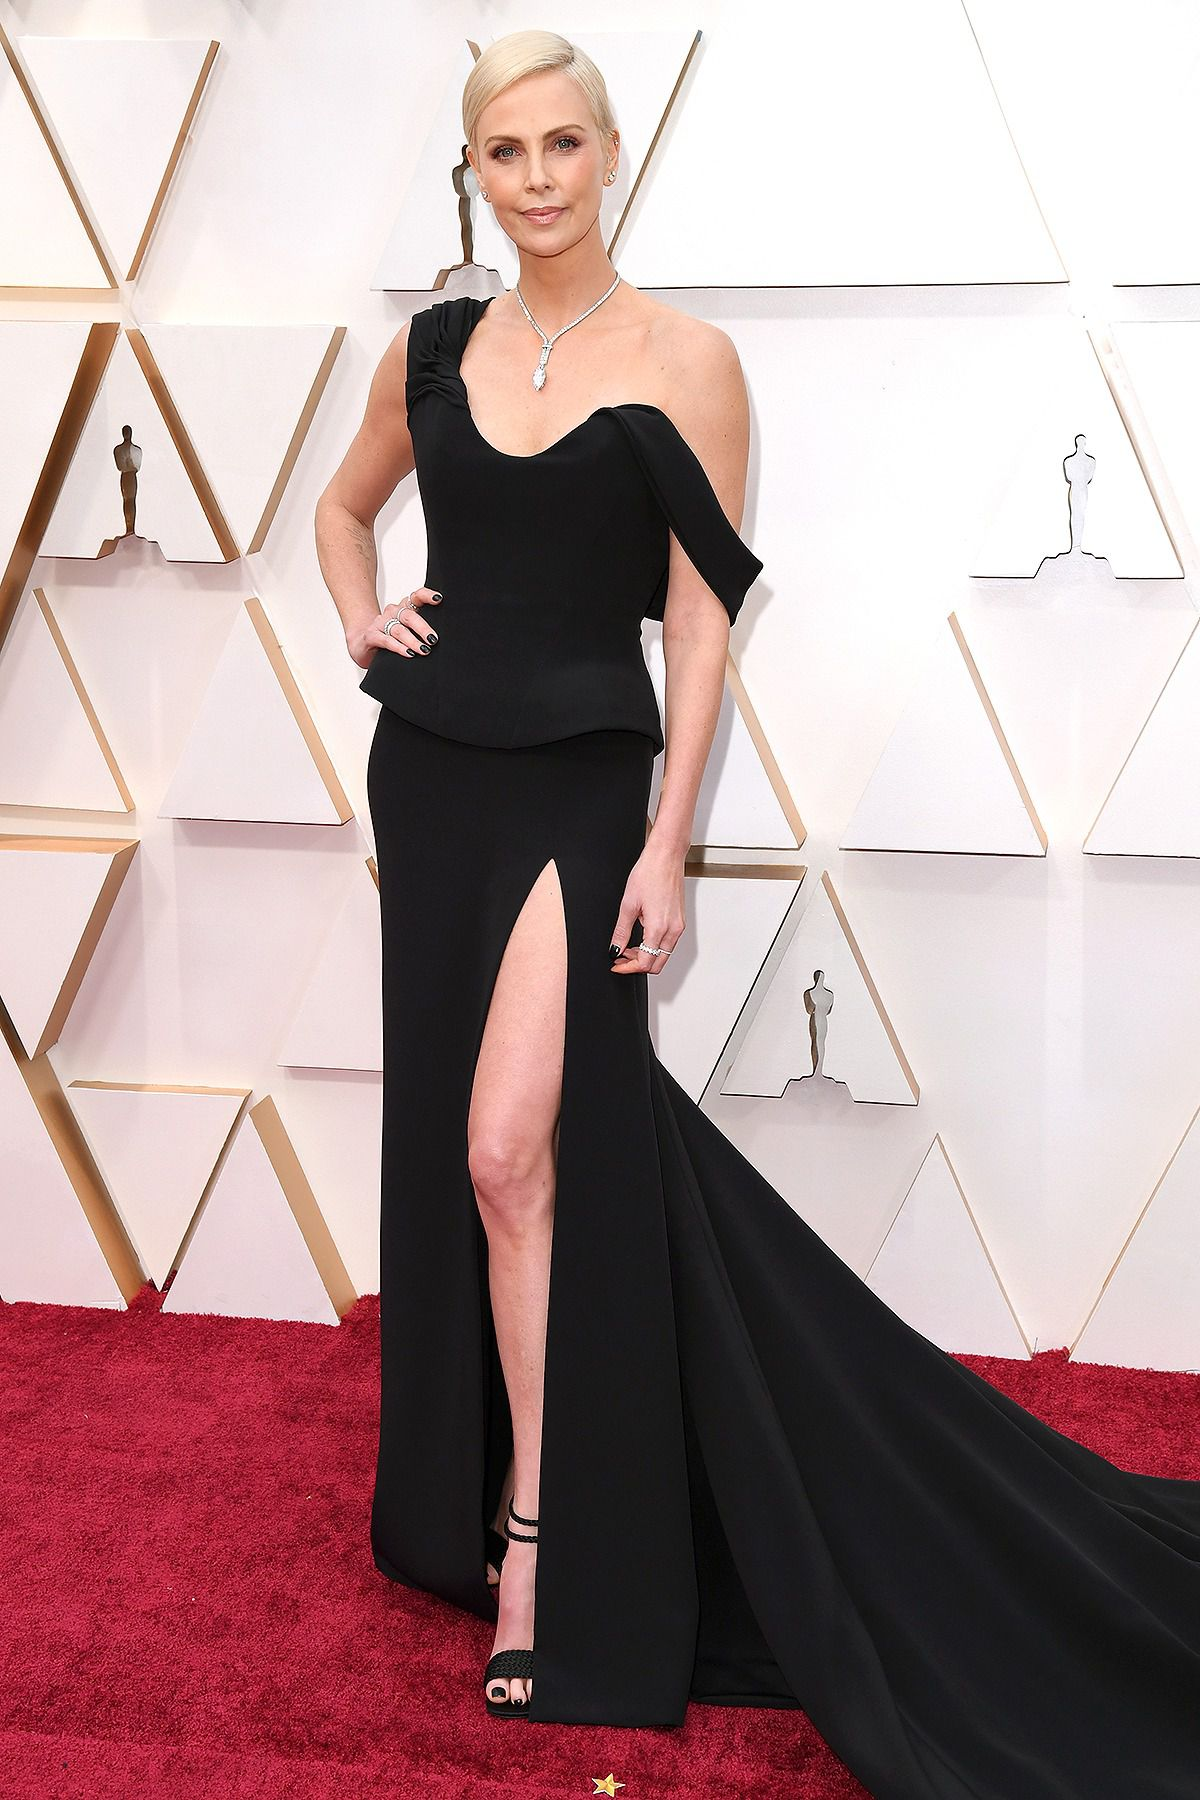 Charlize Theron at the Oscars 2020.